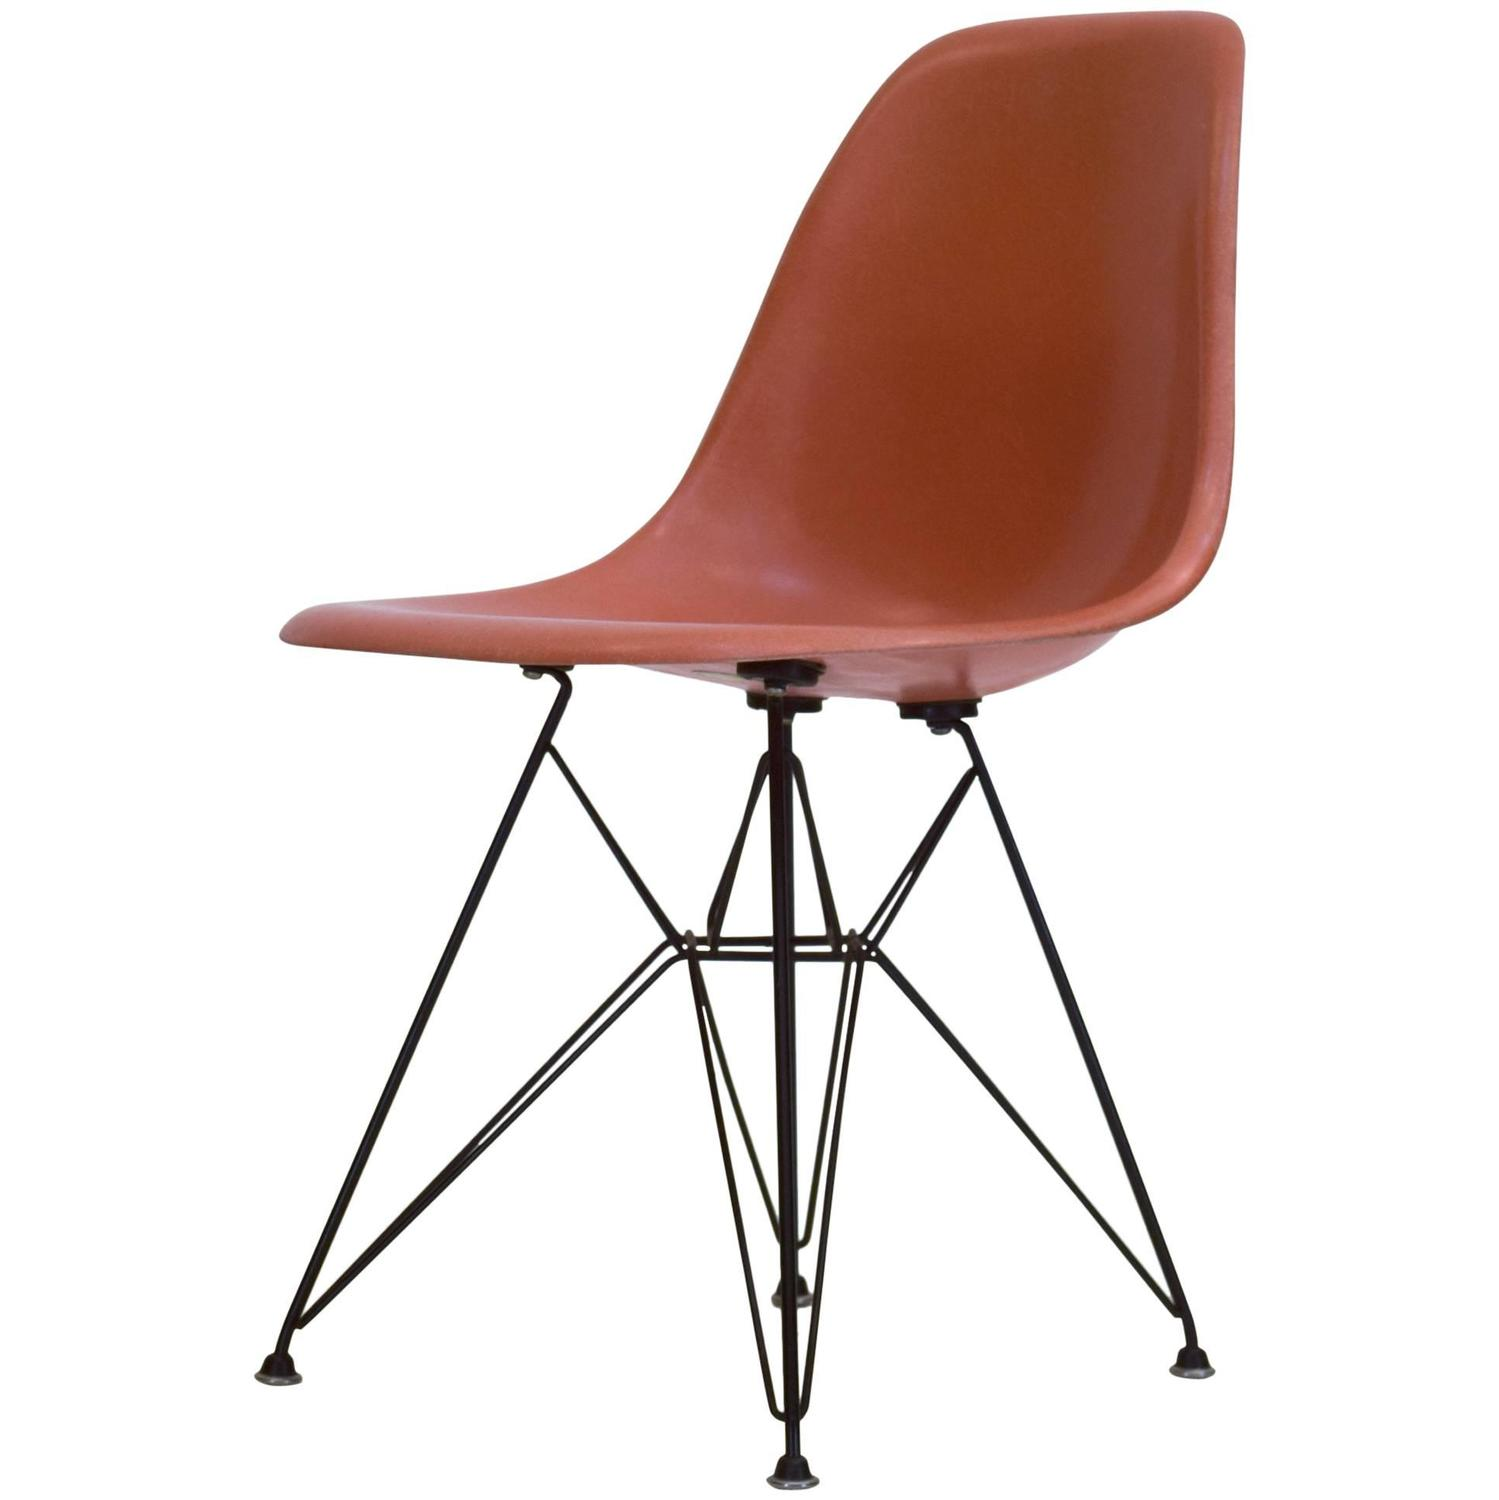 Eames Shell Chair On Original Eiffel Base, 1950s For Sale At 1stdibs